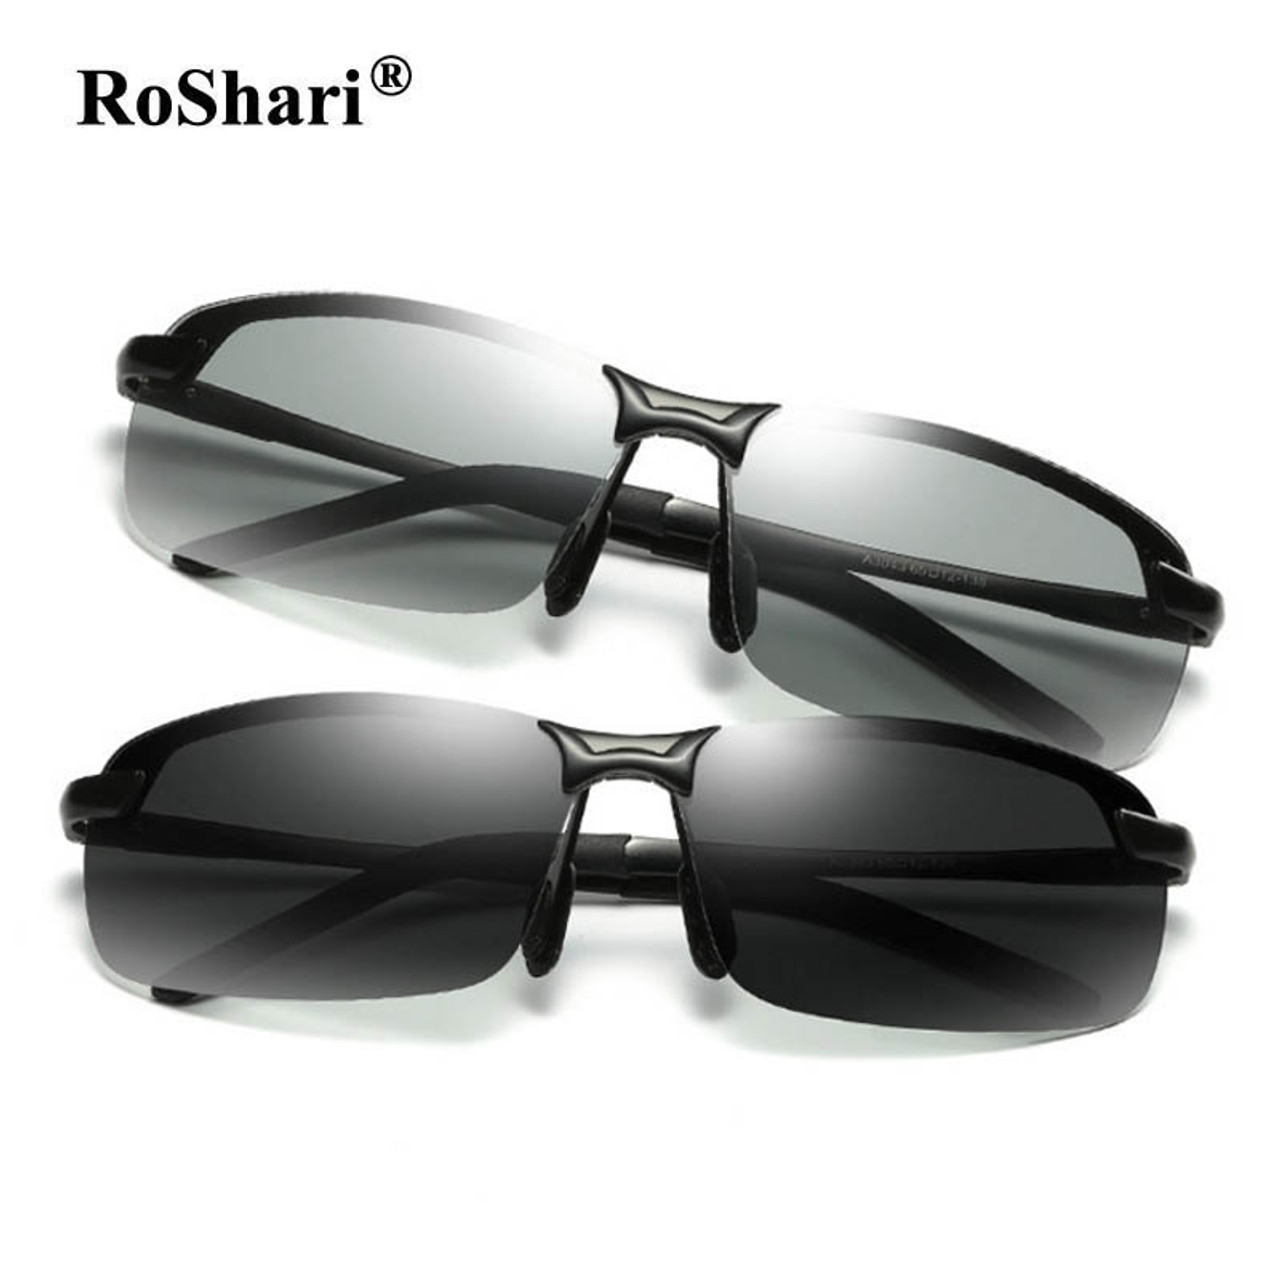 RoShari Driving Photochromic Sunglasses Men Polarized Chameleon  Discoloration Sun glasses for men oculos de sol masculino P3043 -  OnshopDeals.Com d85311ade4